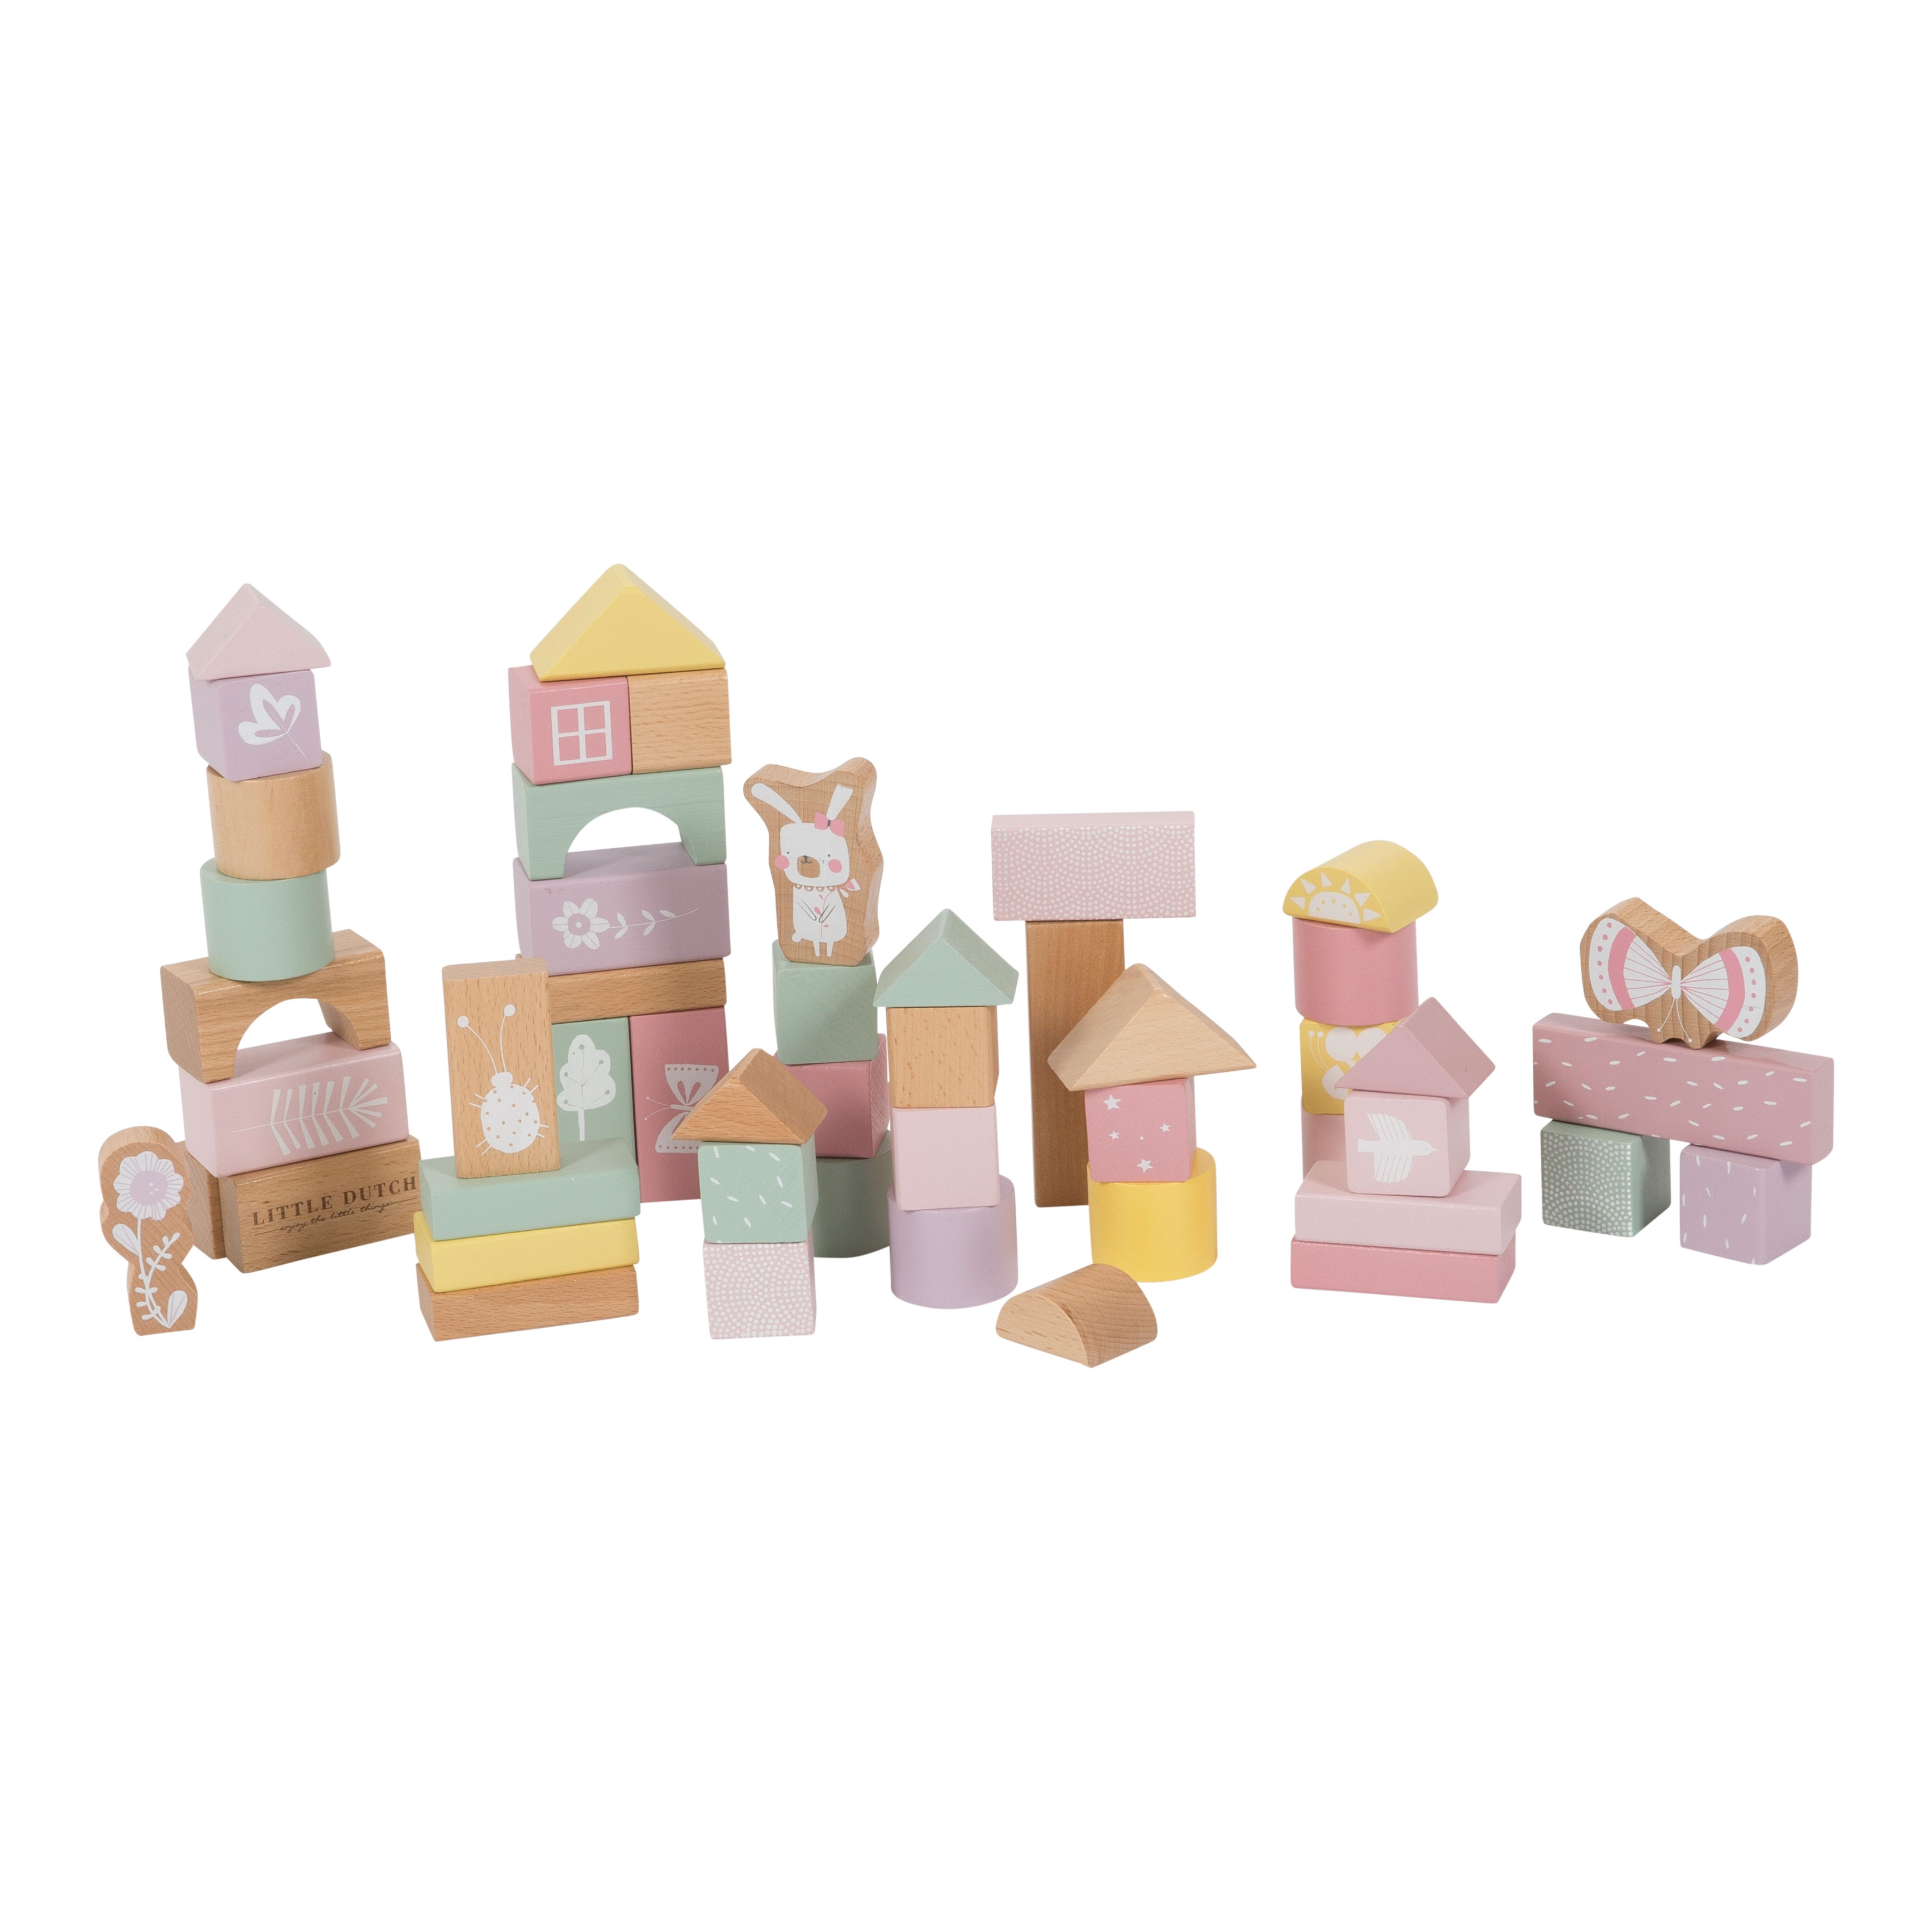 Little Dutch - Pink Holzbausteine in Box, 50 teile (LDW4412)